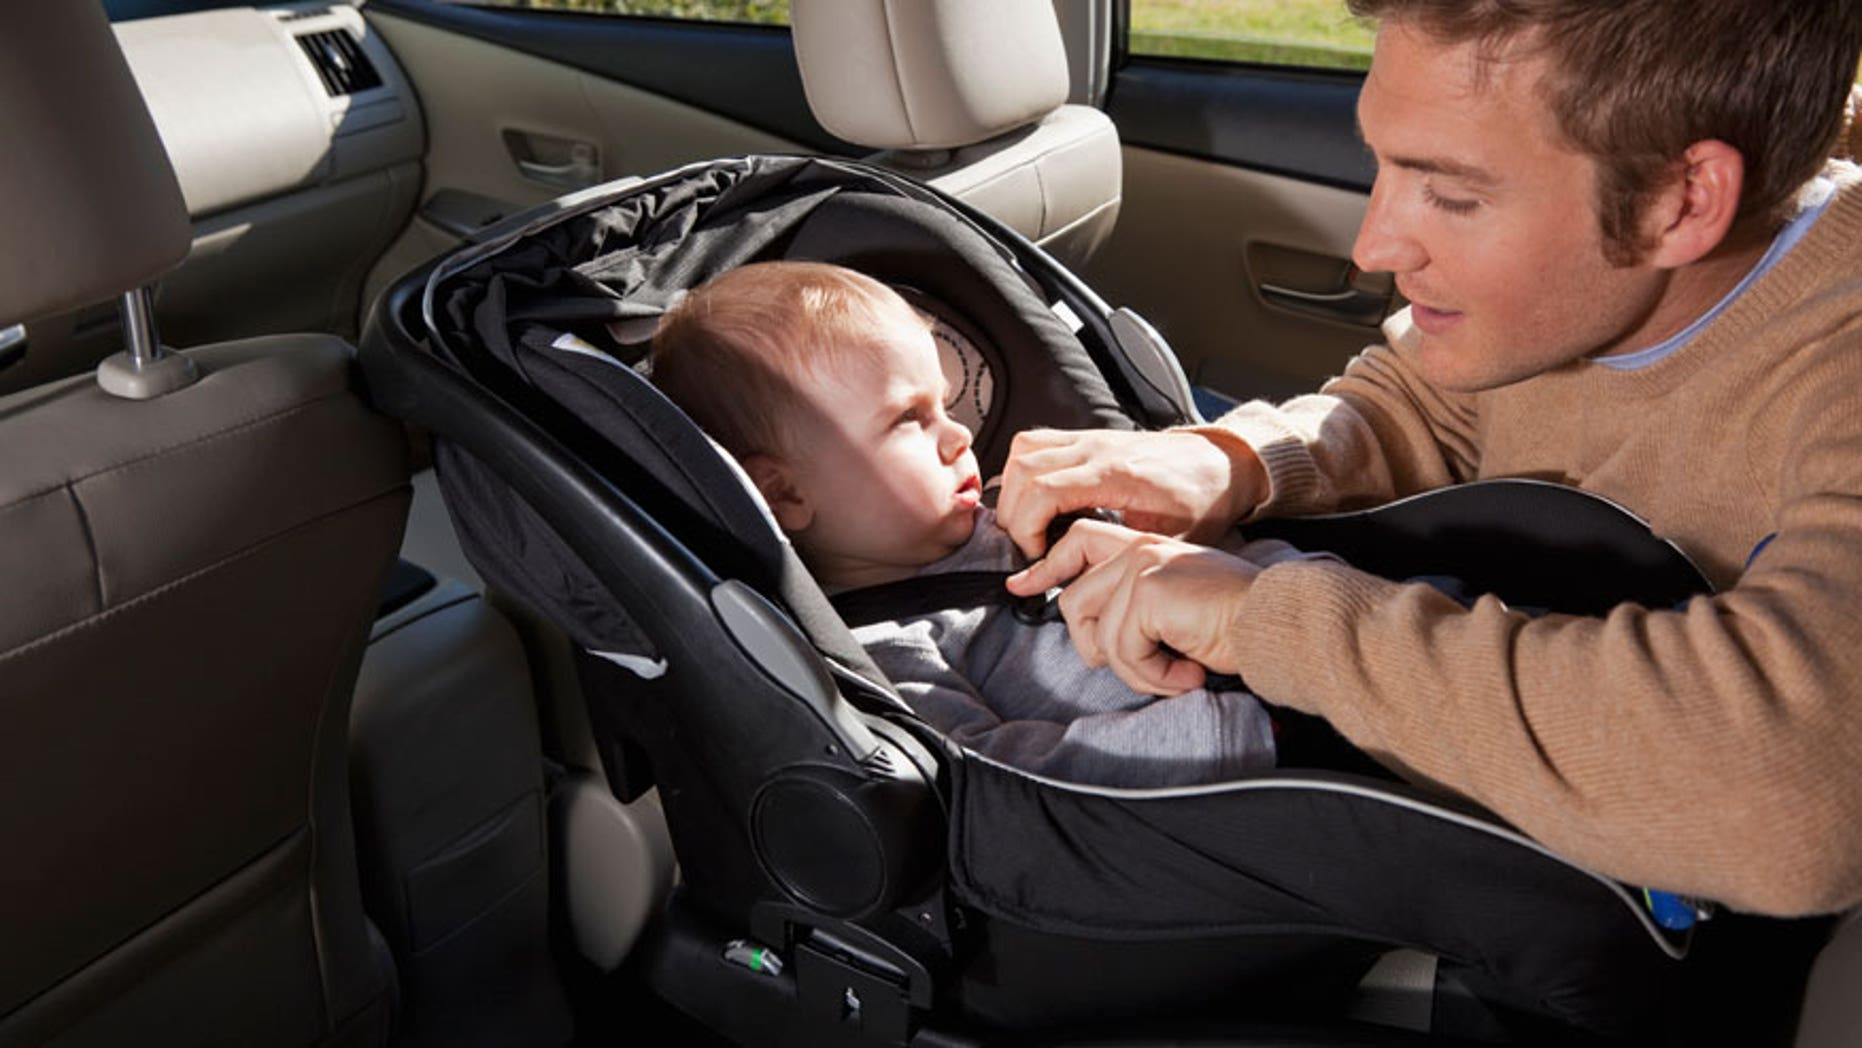 Illinois Children Must Stay In Rear Facing Car Seat Until Age 2 New